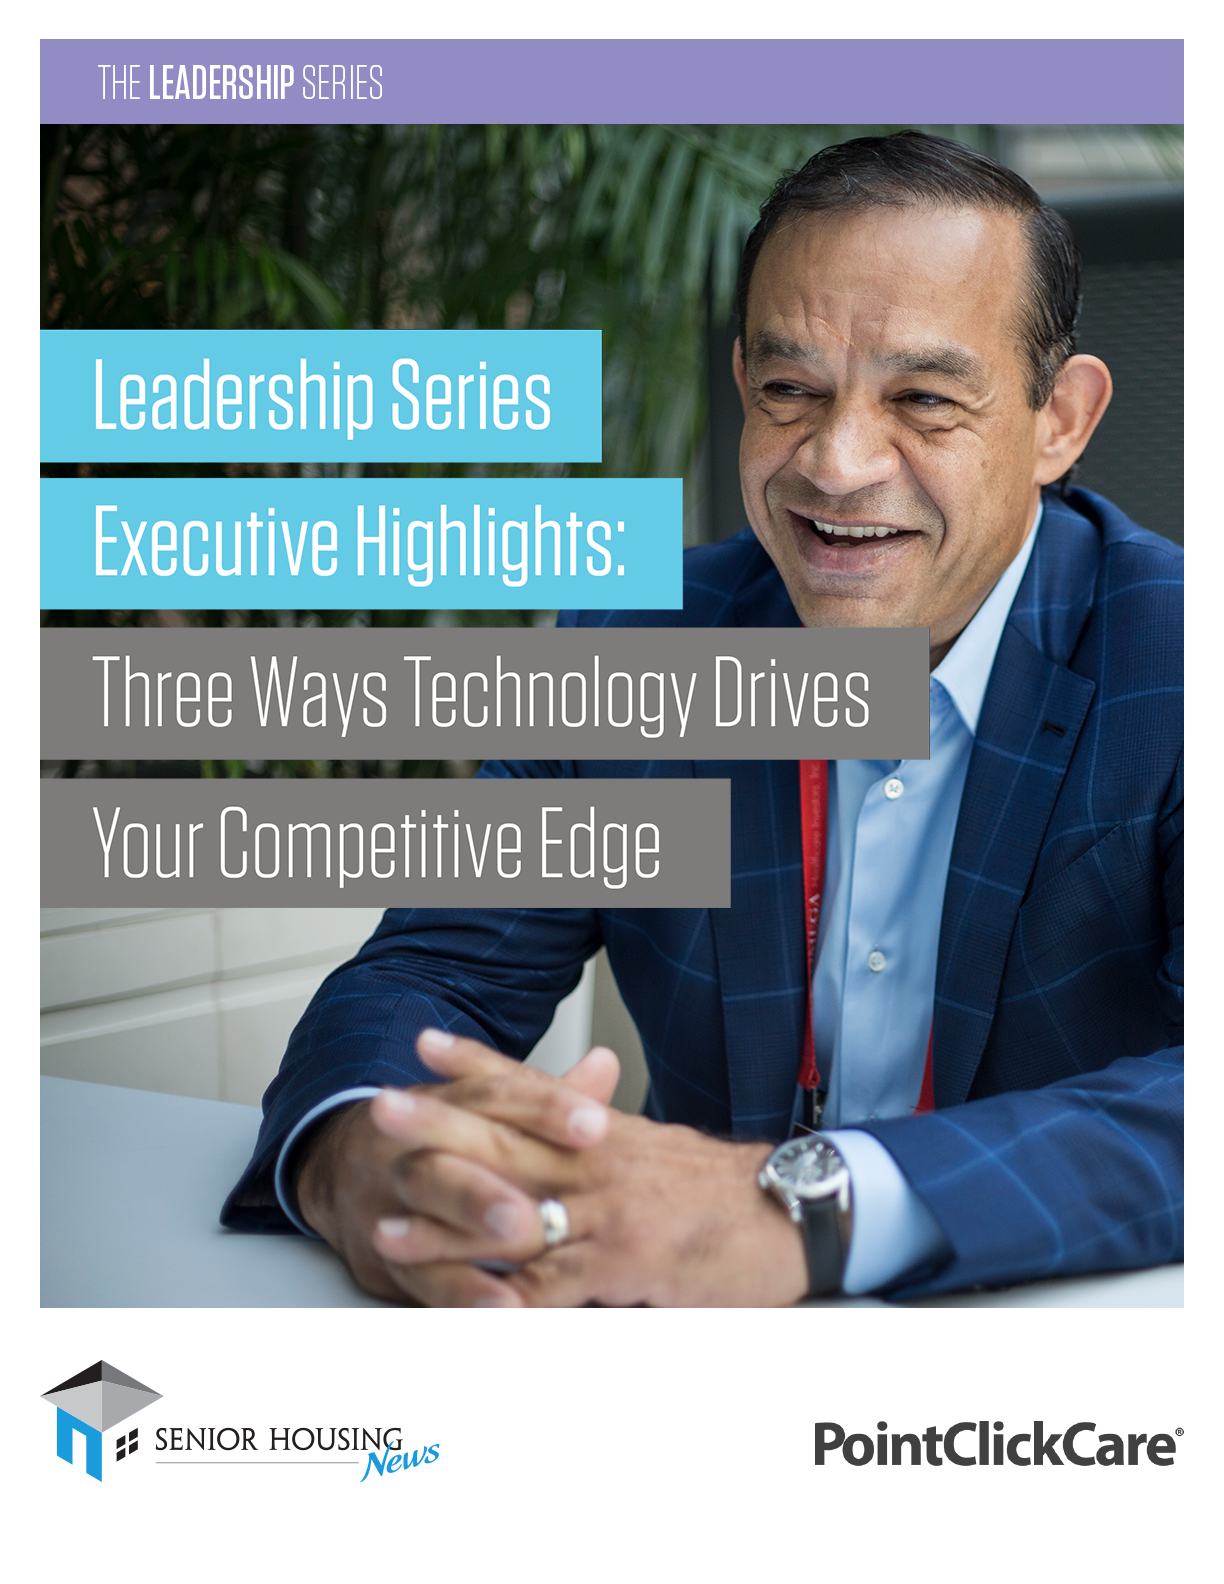 Leadership Series Executive Highlights: Three Ways Technology Drives Your Competitive Edge